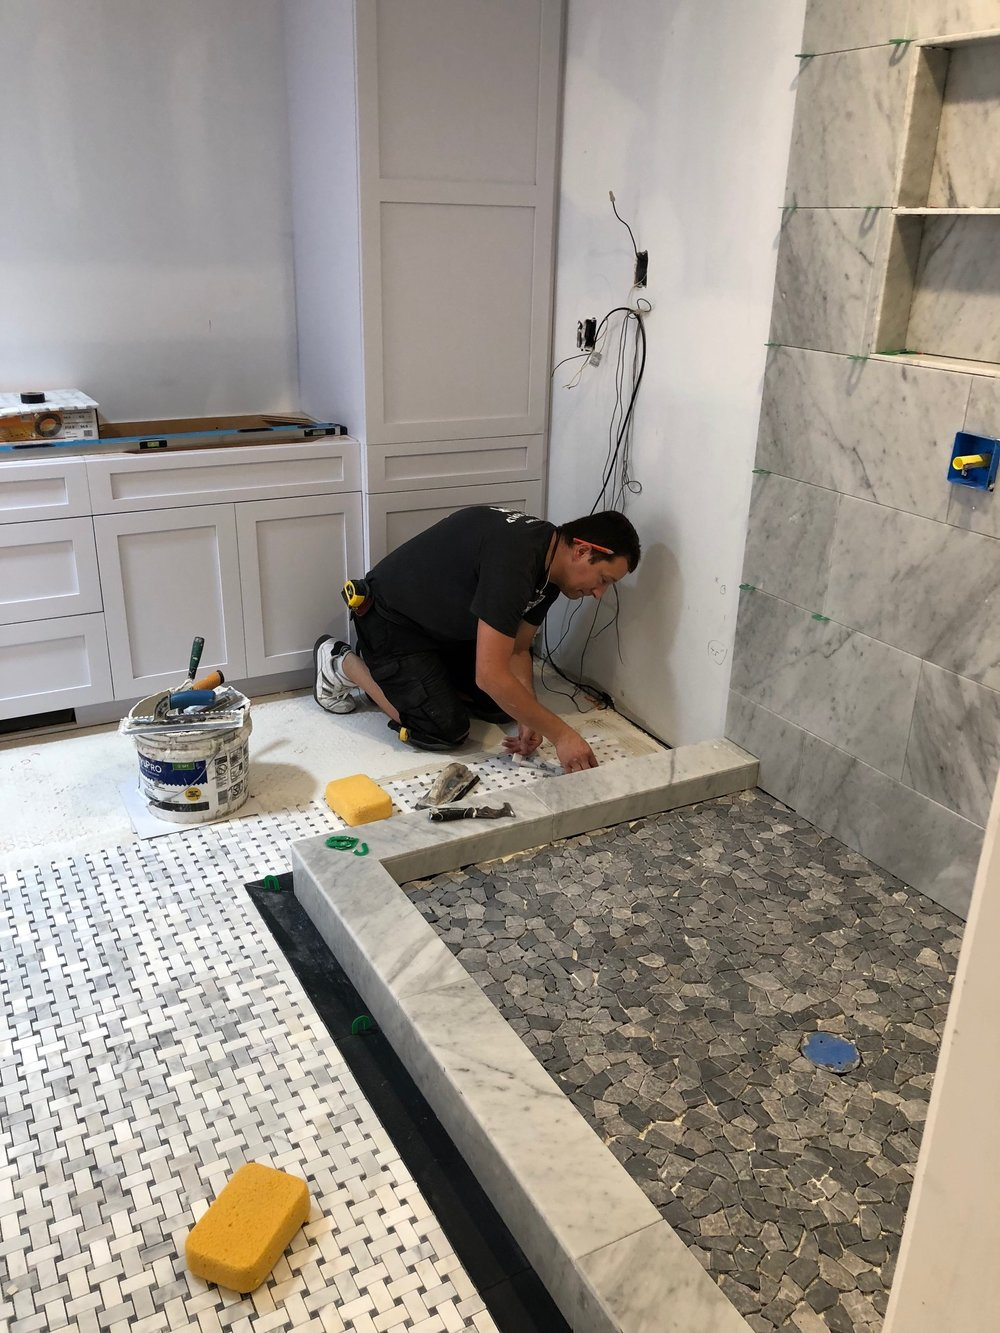 Cristian, the tile master, finishes up the tile in the Van Nort bathroom renovation.